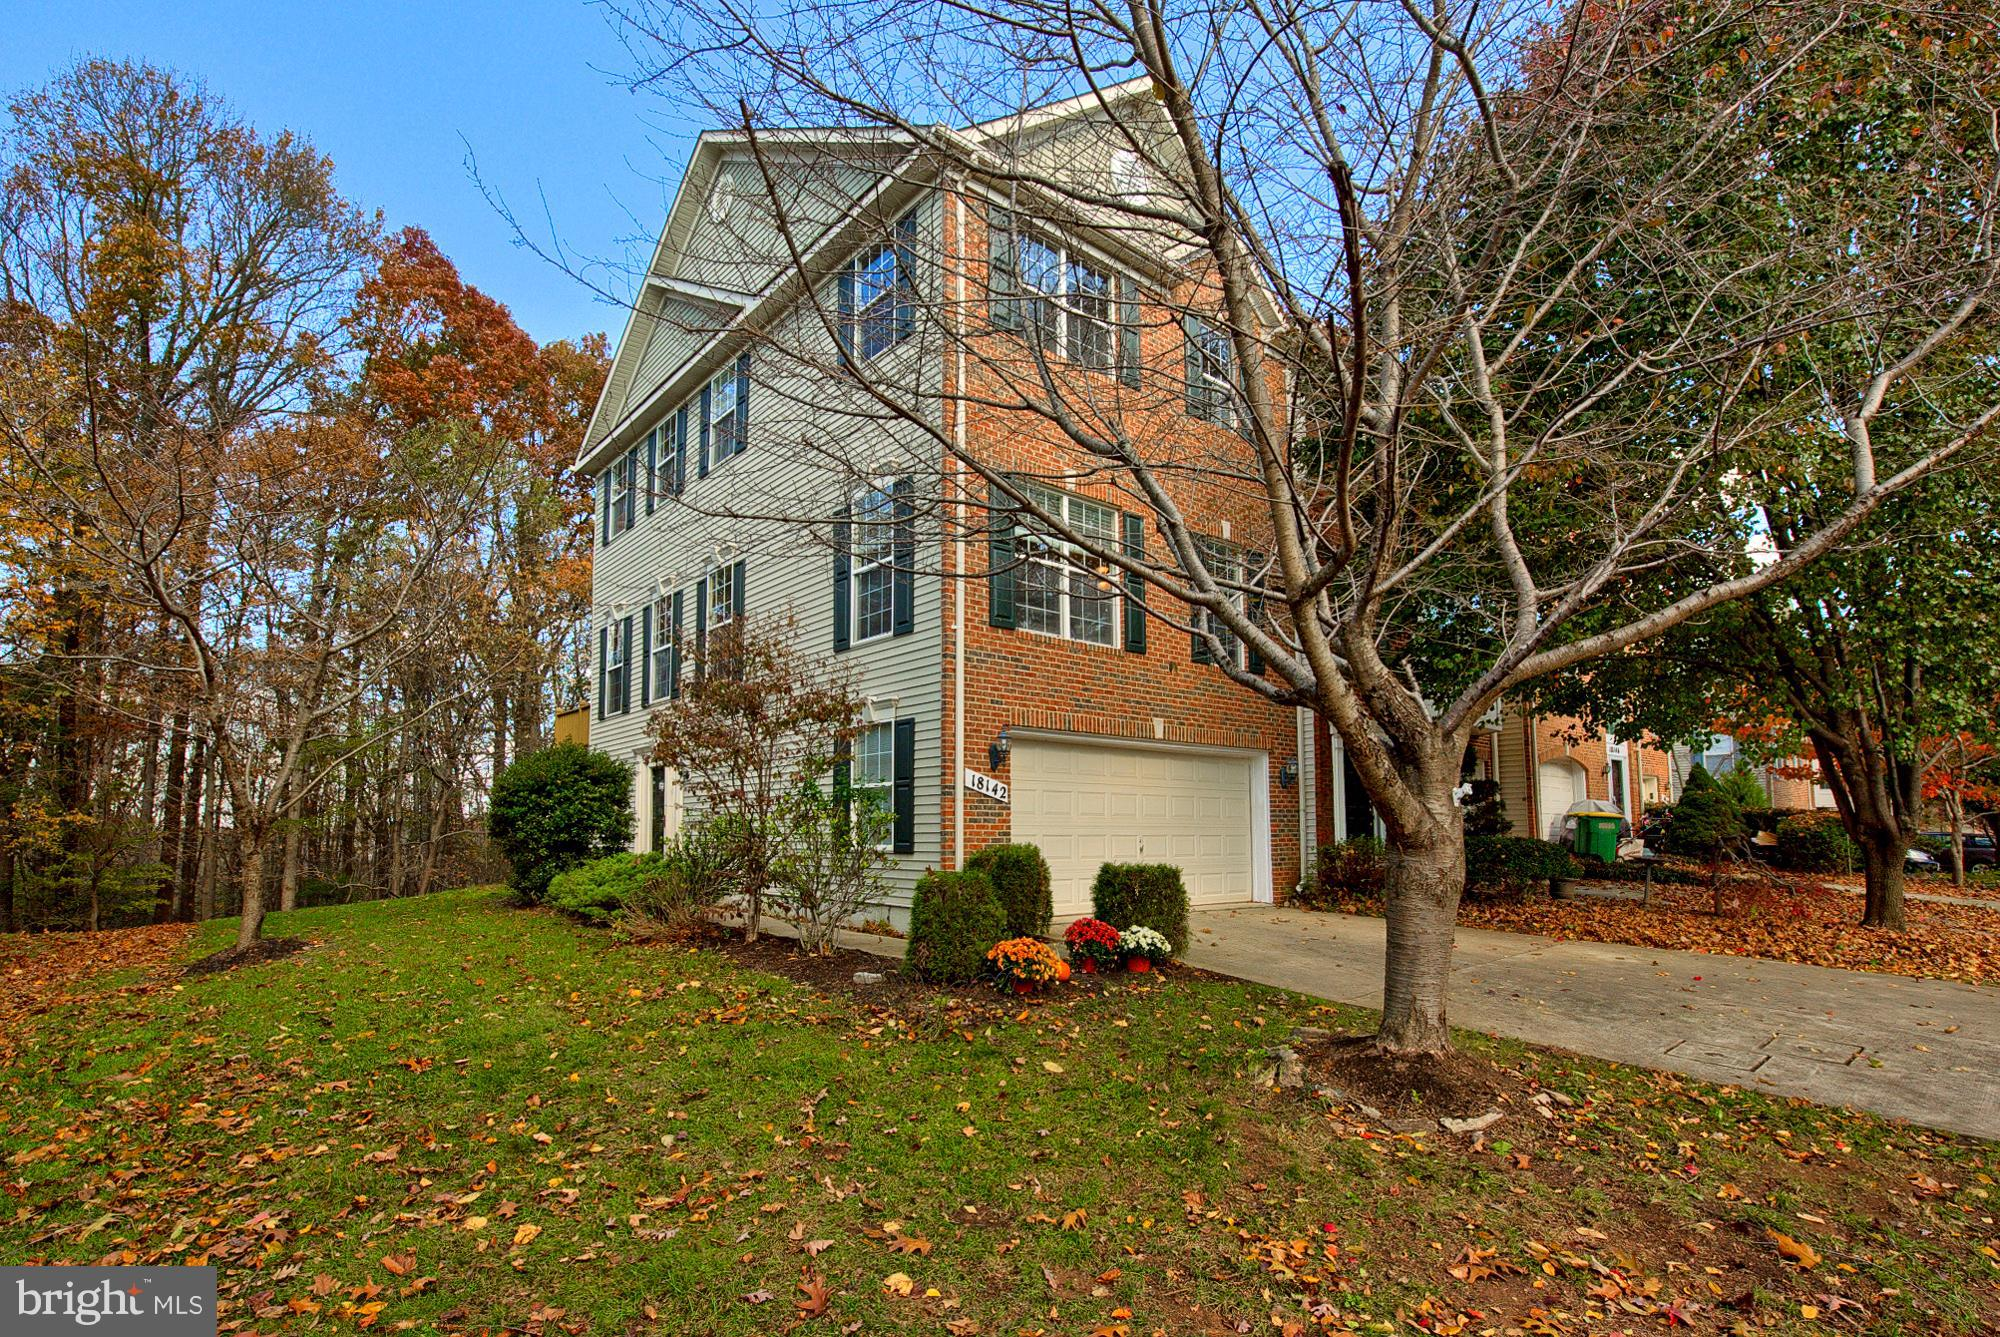 18142 TRUFFLE LANE, BOYDS, MD 20841